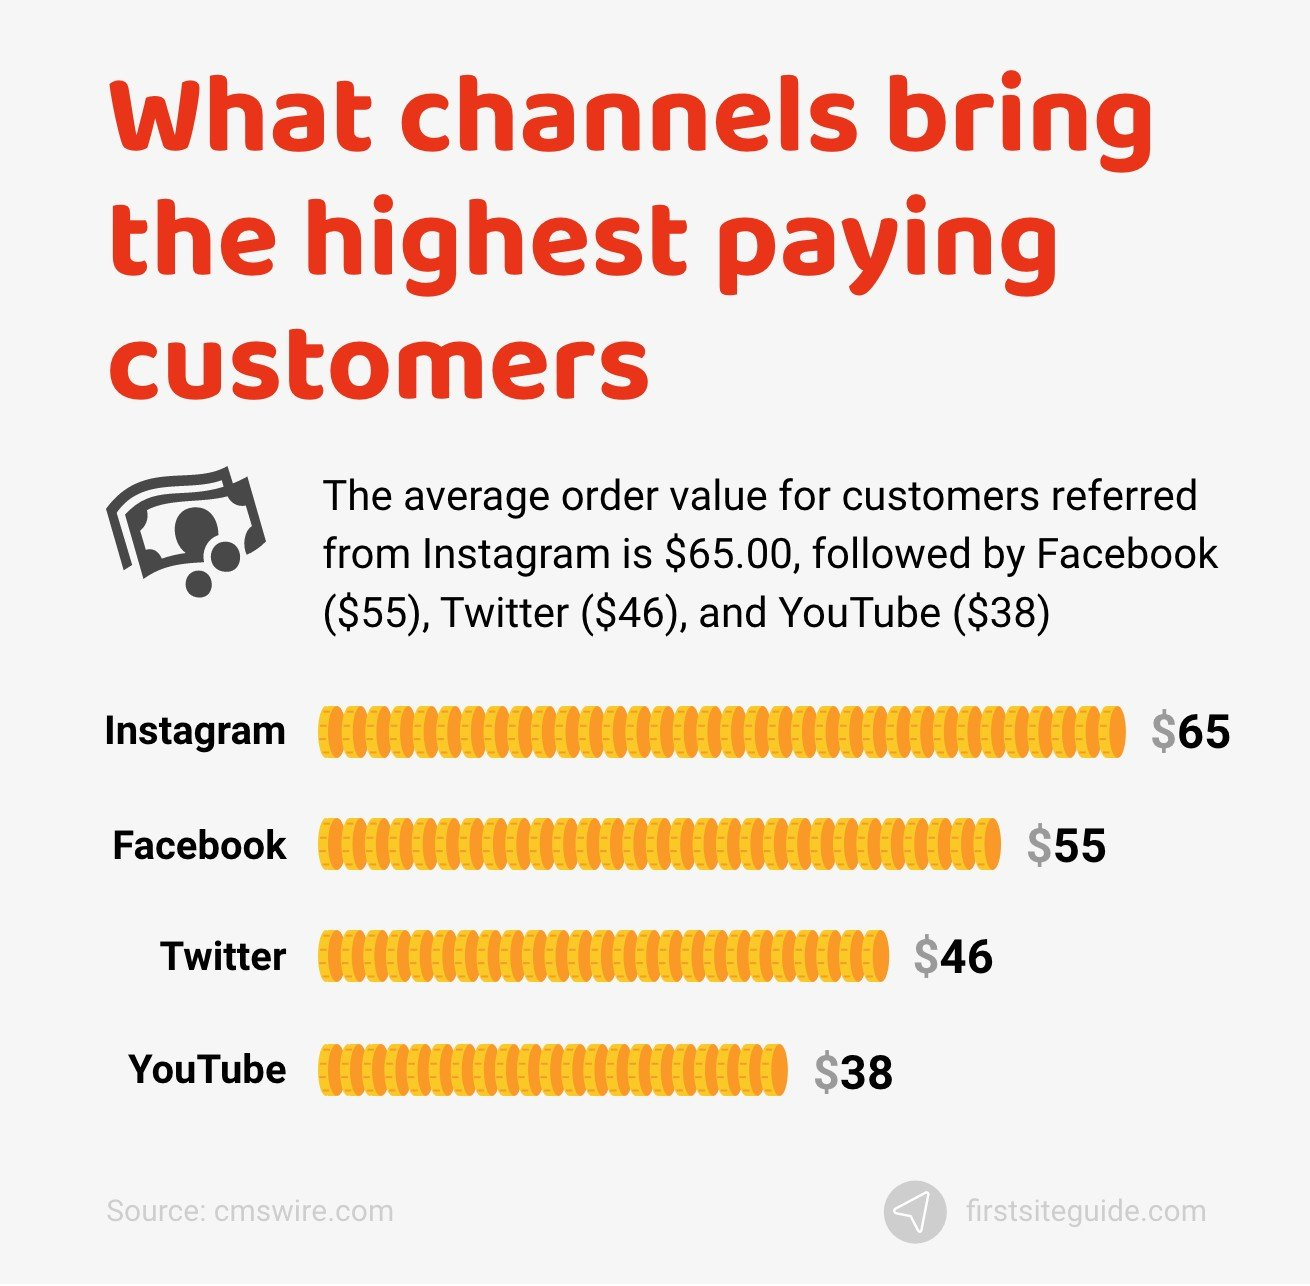 What channels bring the highest paying customers